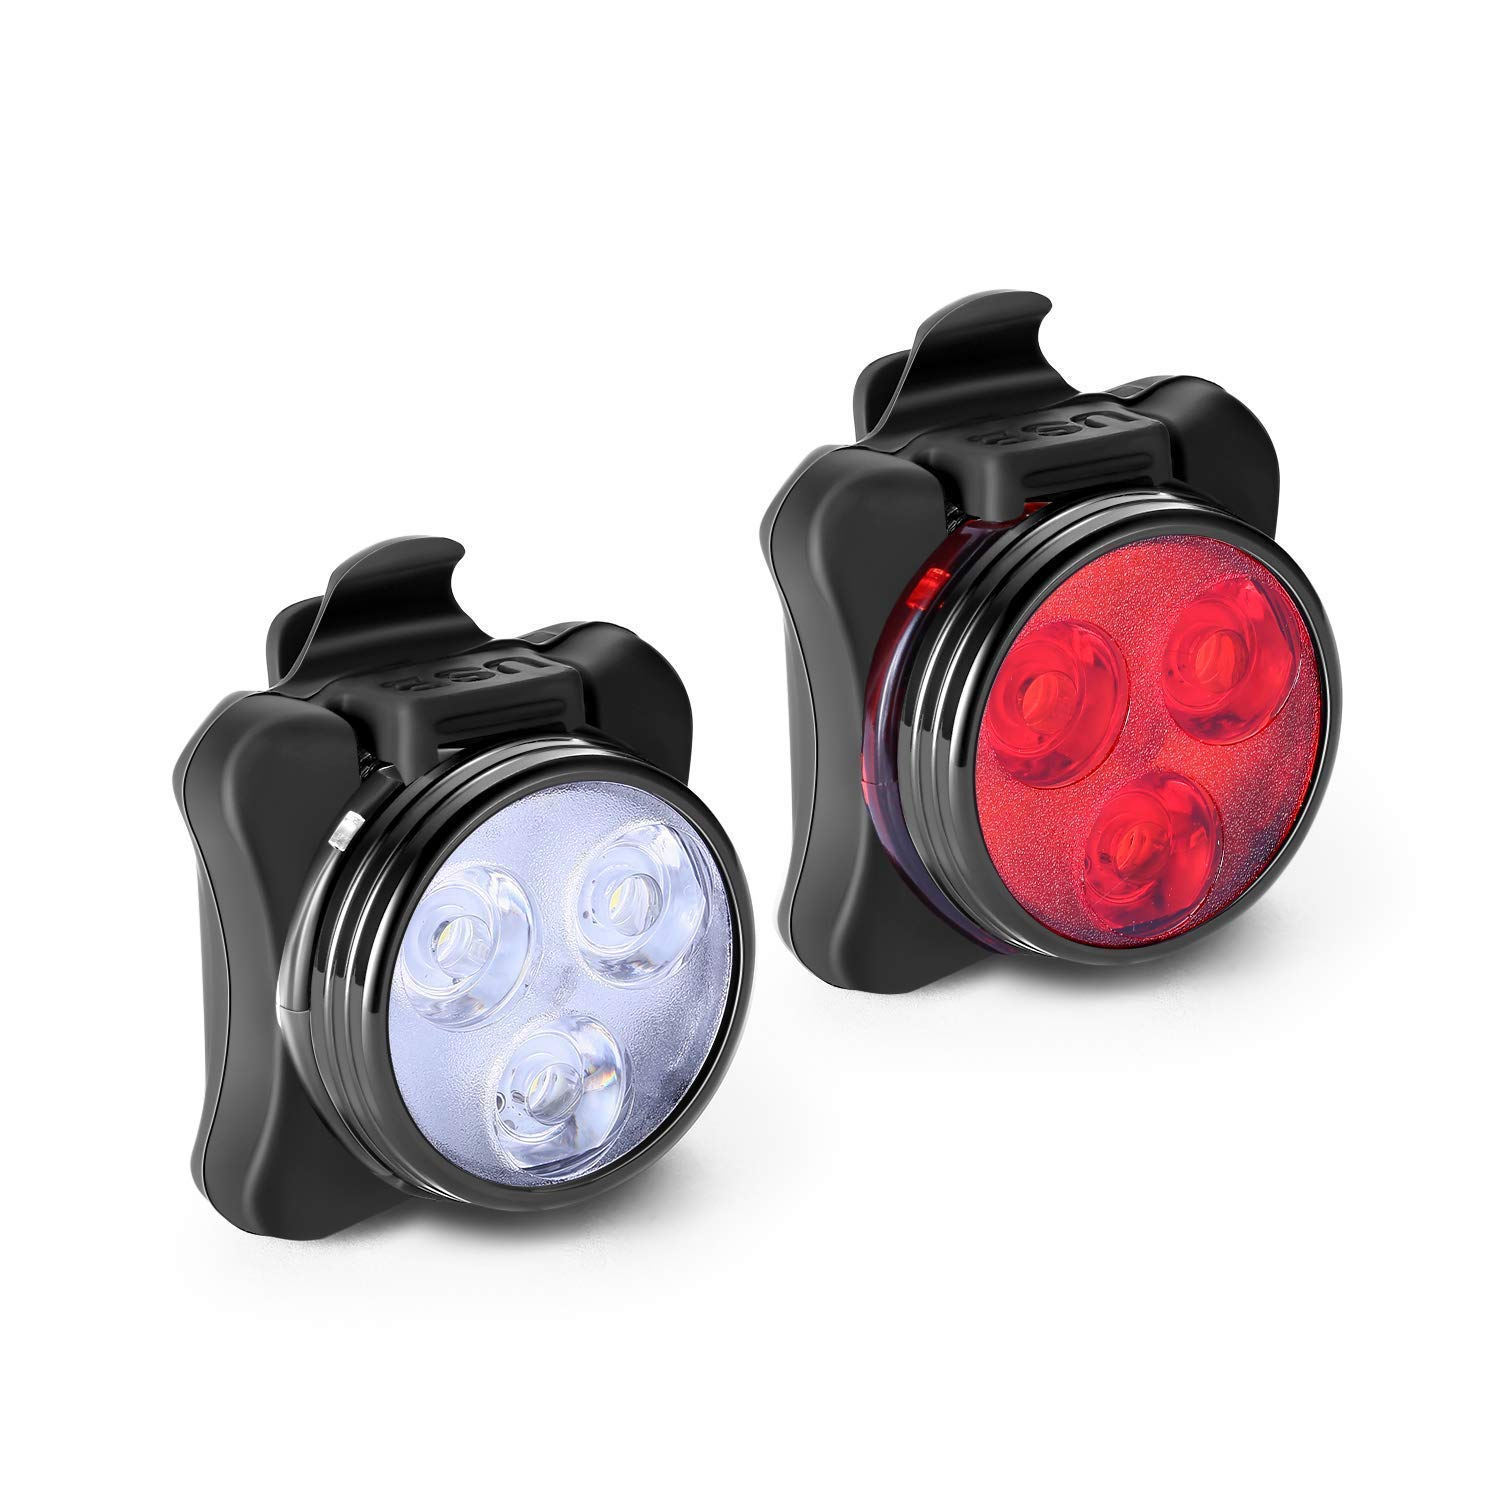 ZOUQILAI Rechargeable Bike Light Set Super Bright LED Mountain Bicycle Lights Front and Rear Night Ride Searchlight Taillight Warning Lights